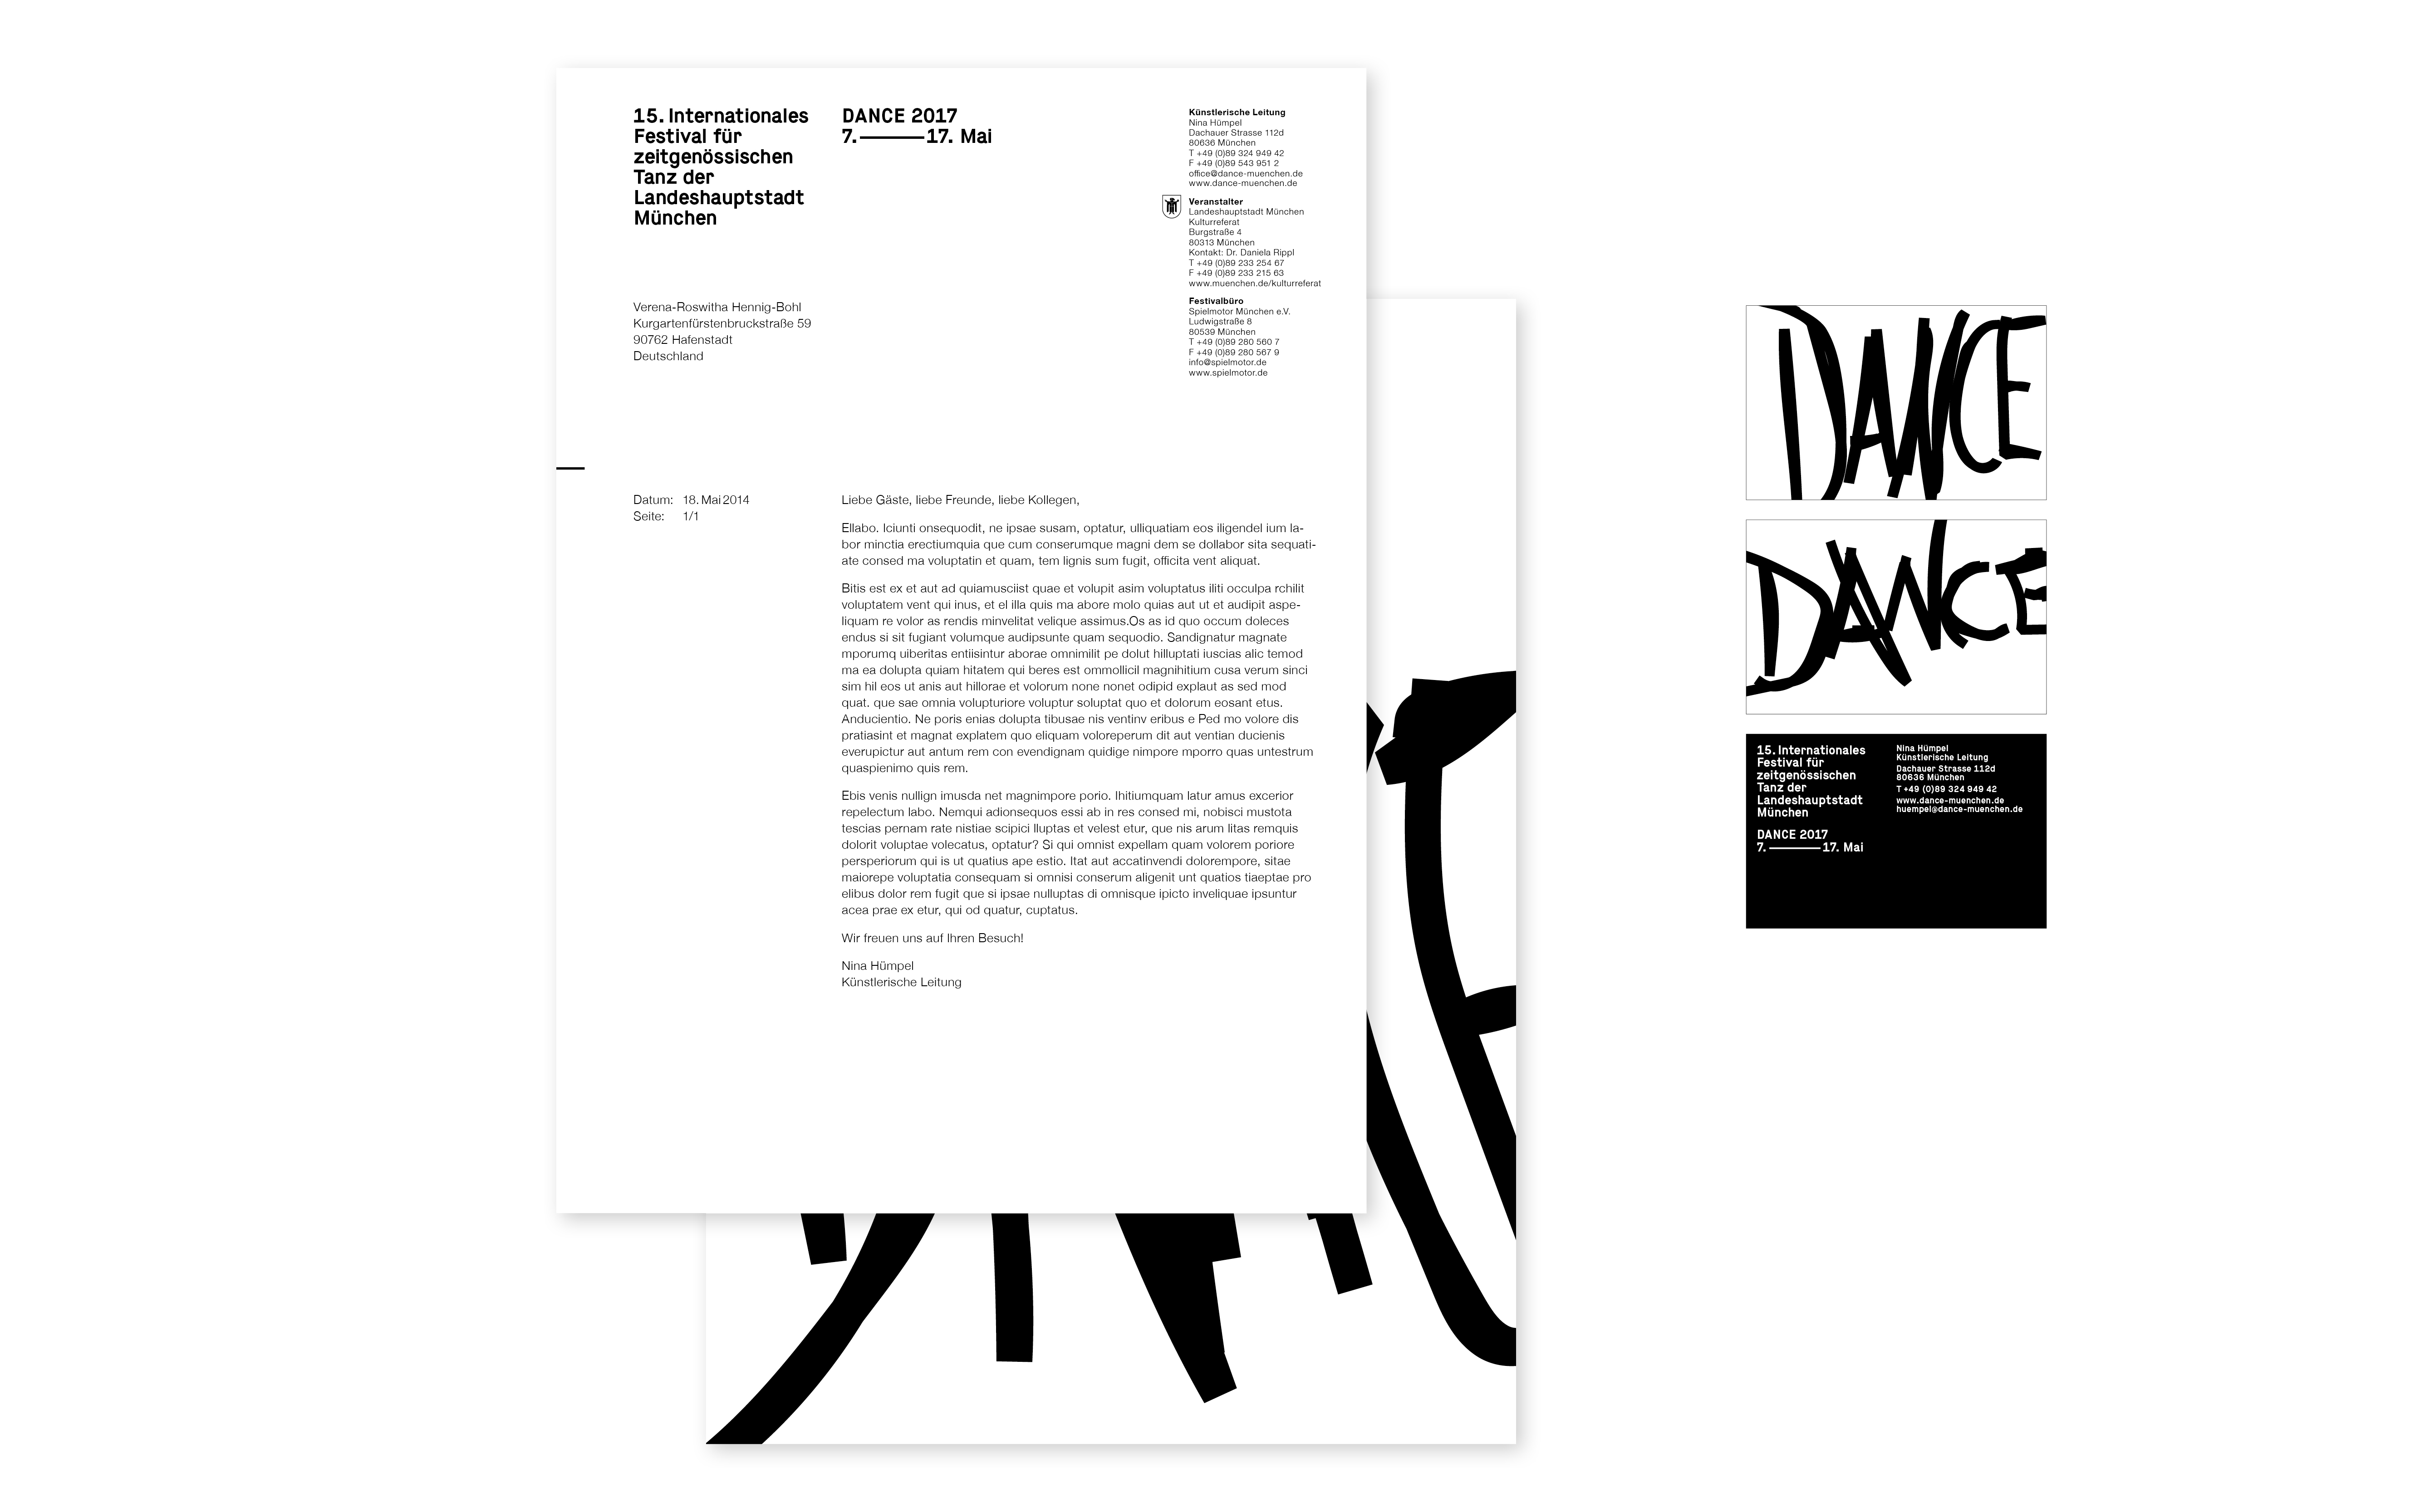 ludwig janoff — visual design dance